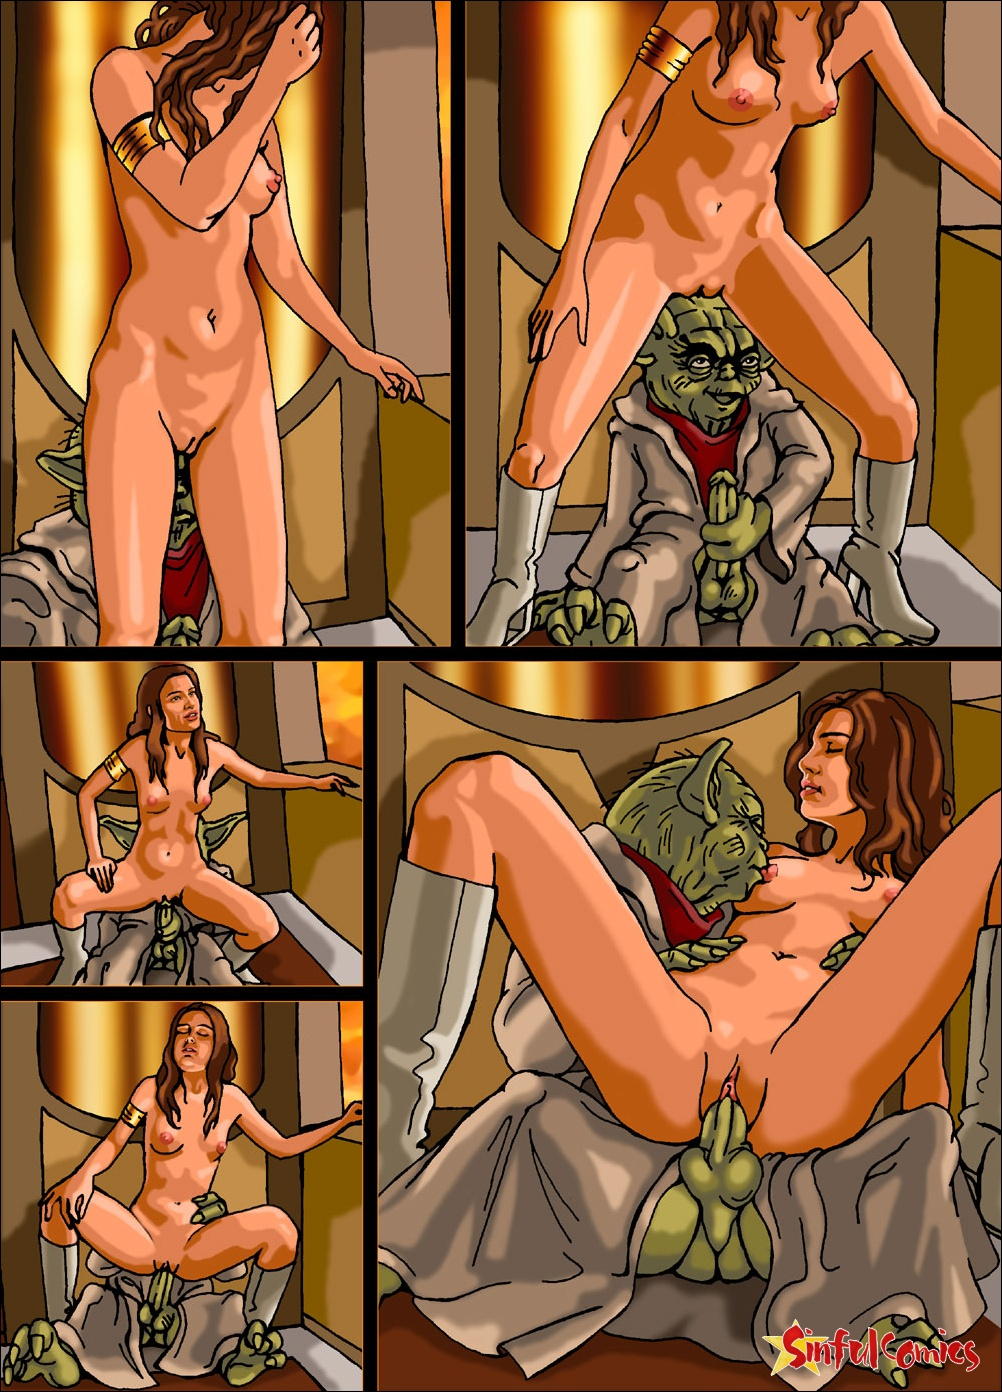 Star wars rogue henta pics nsfw picture